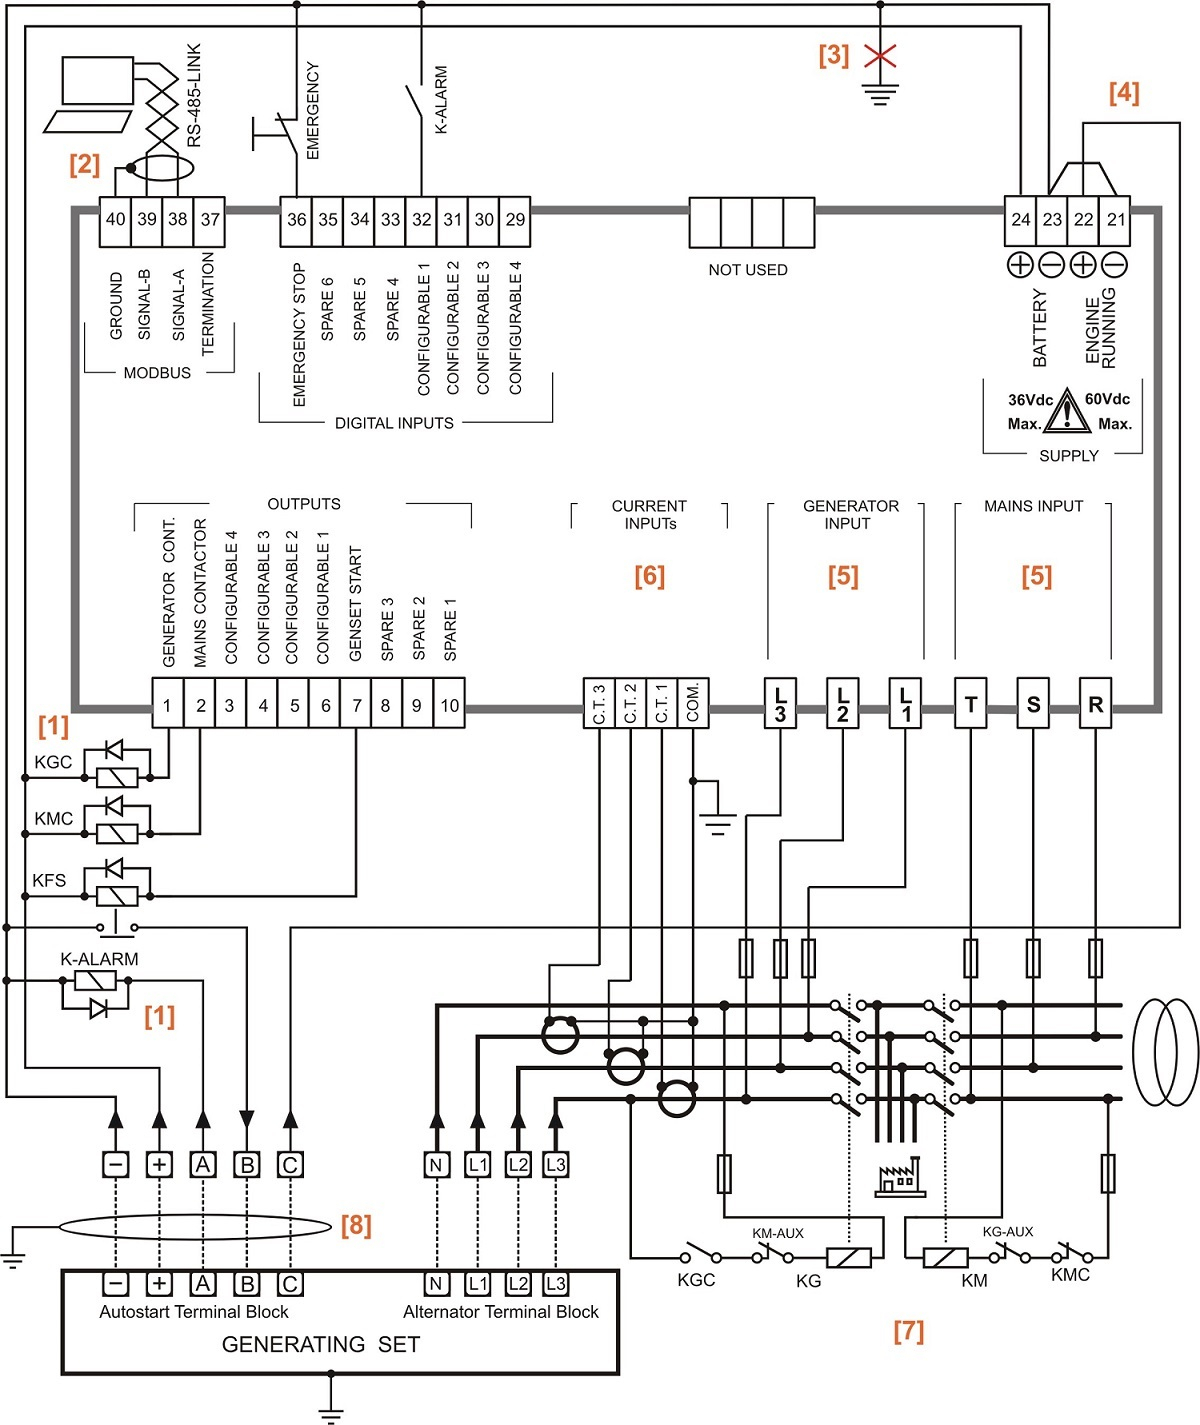 Wiring Diagram Starter 6500gp Generac Generator Auto Start Guide And Automatic Transfer Switch Diagrams Detailed Rh 7 6 Ocotillo Paysage Com 11kw